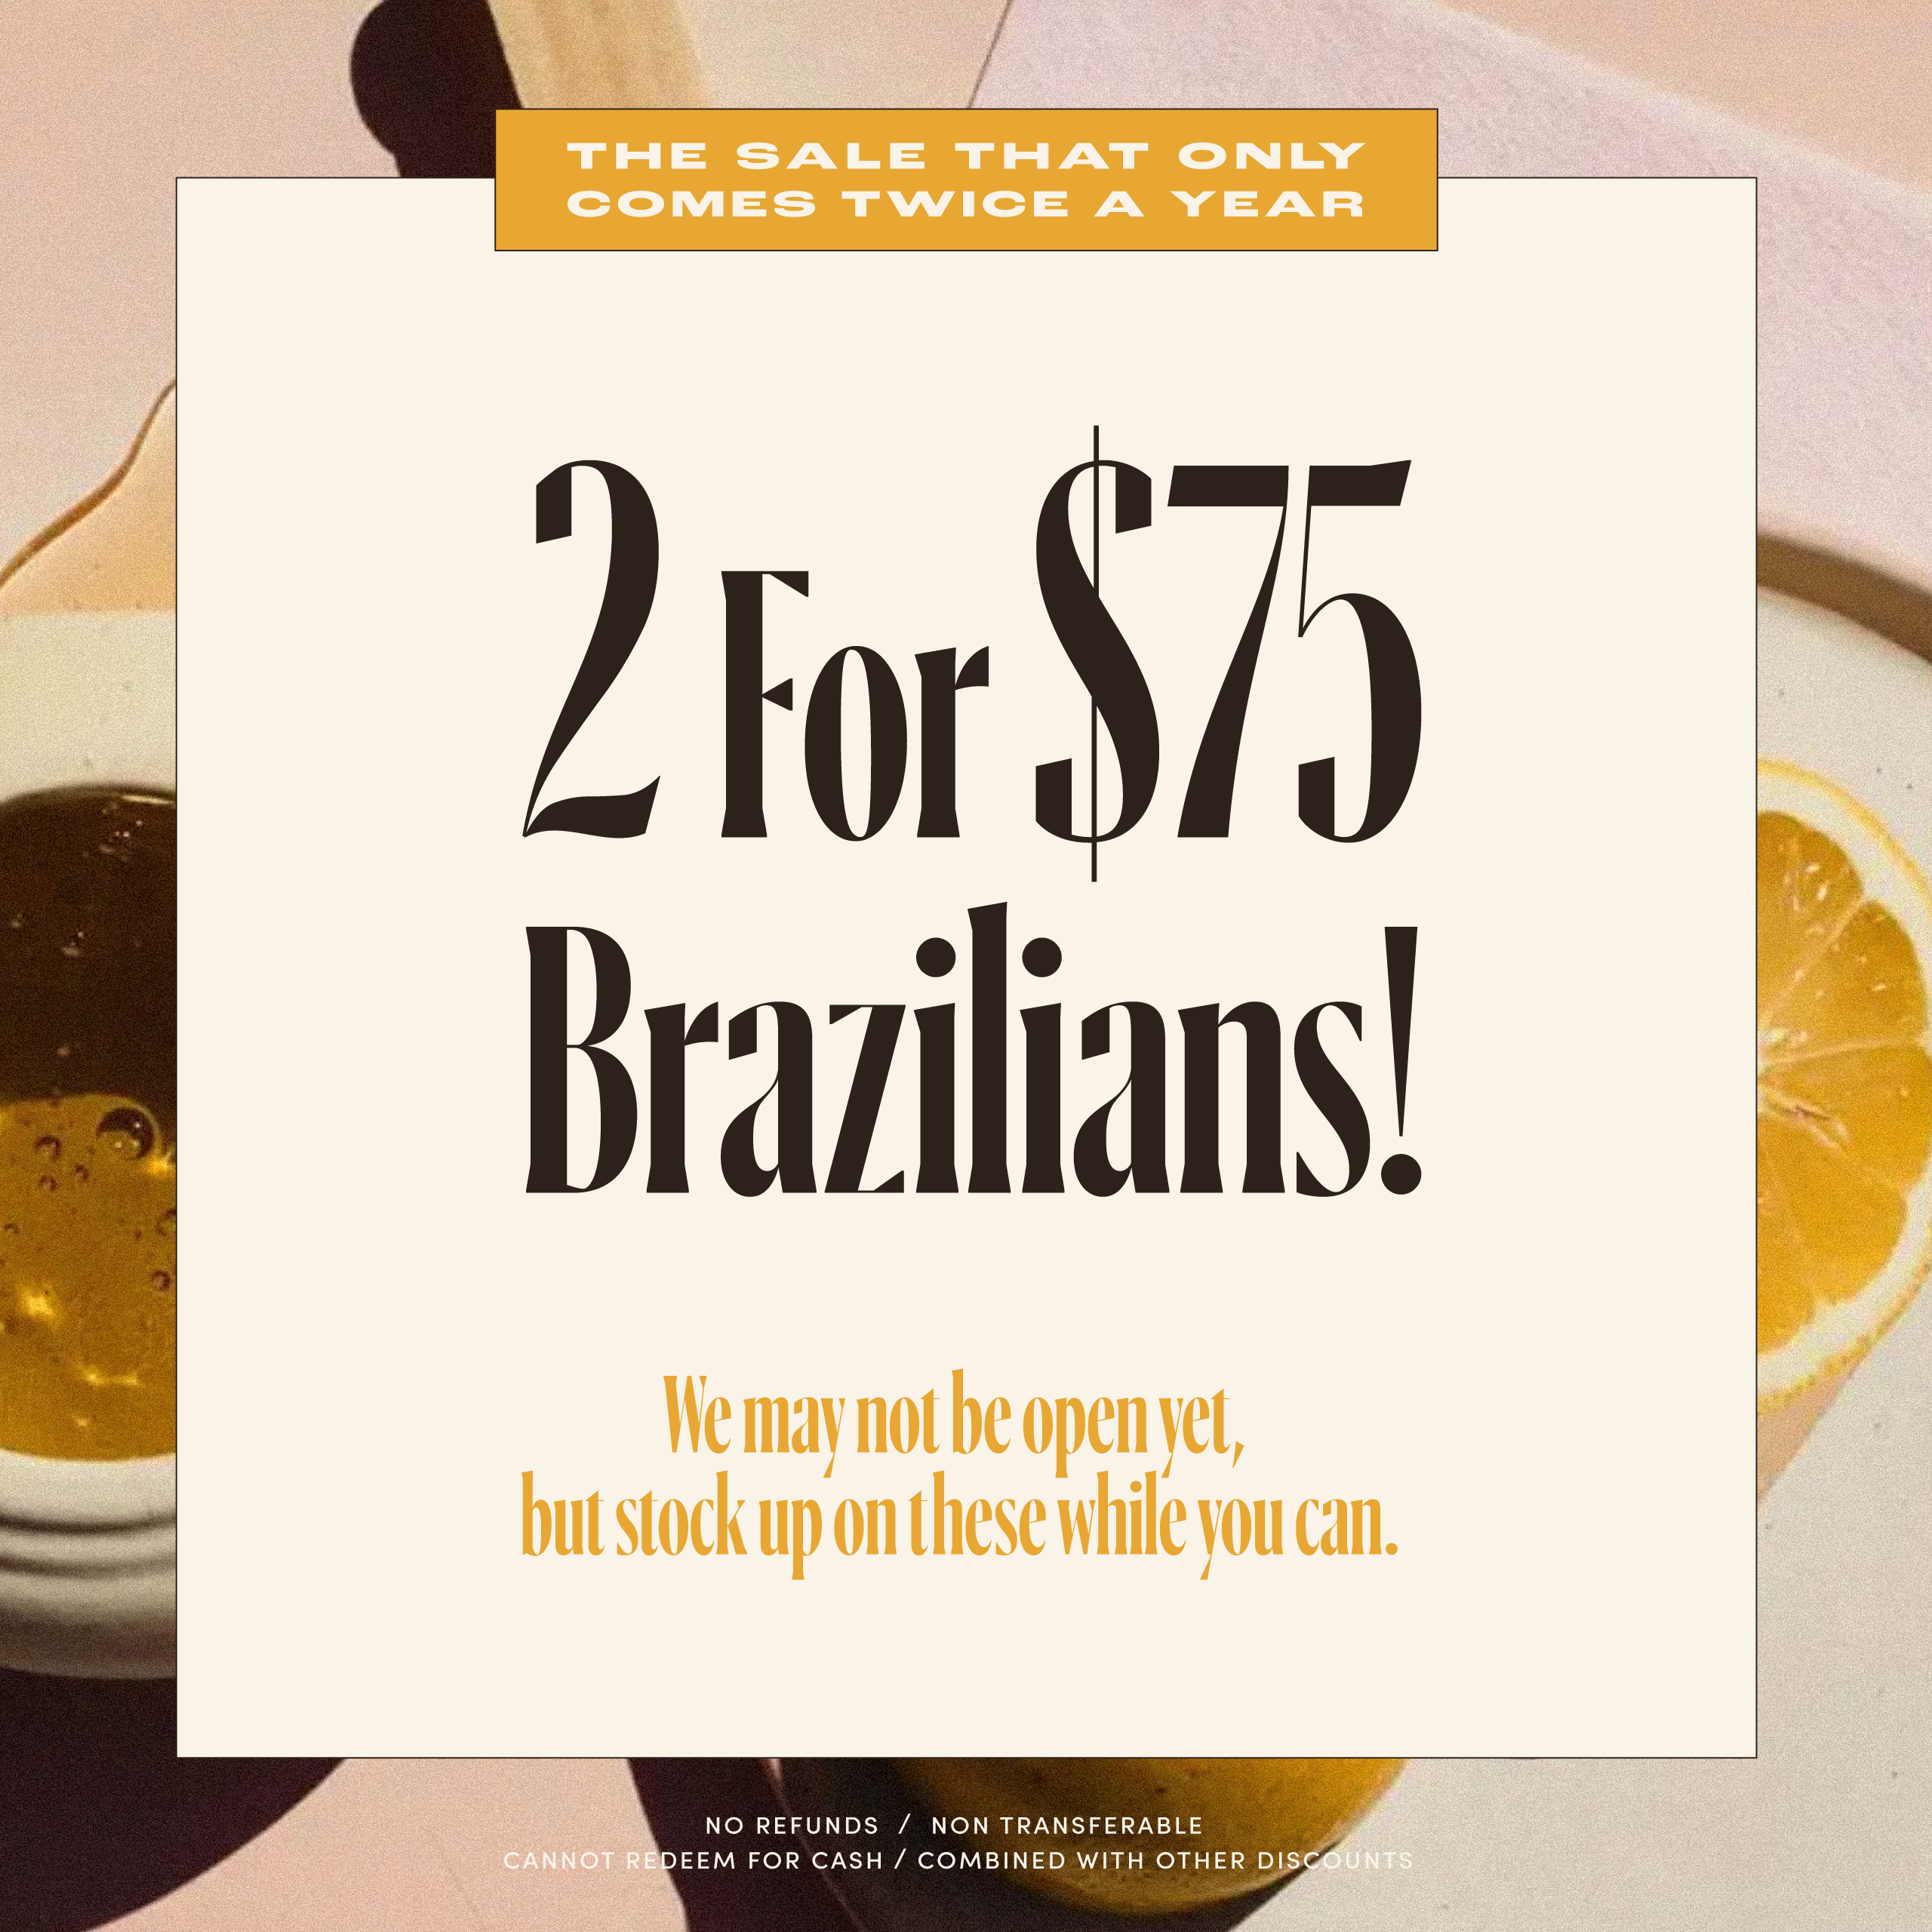 2 for $75 Brazilians Sale